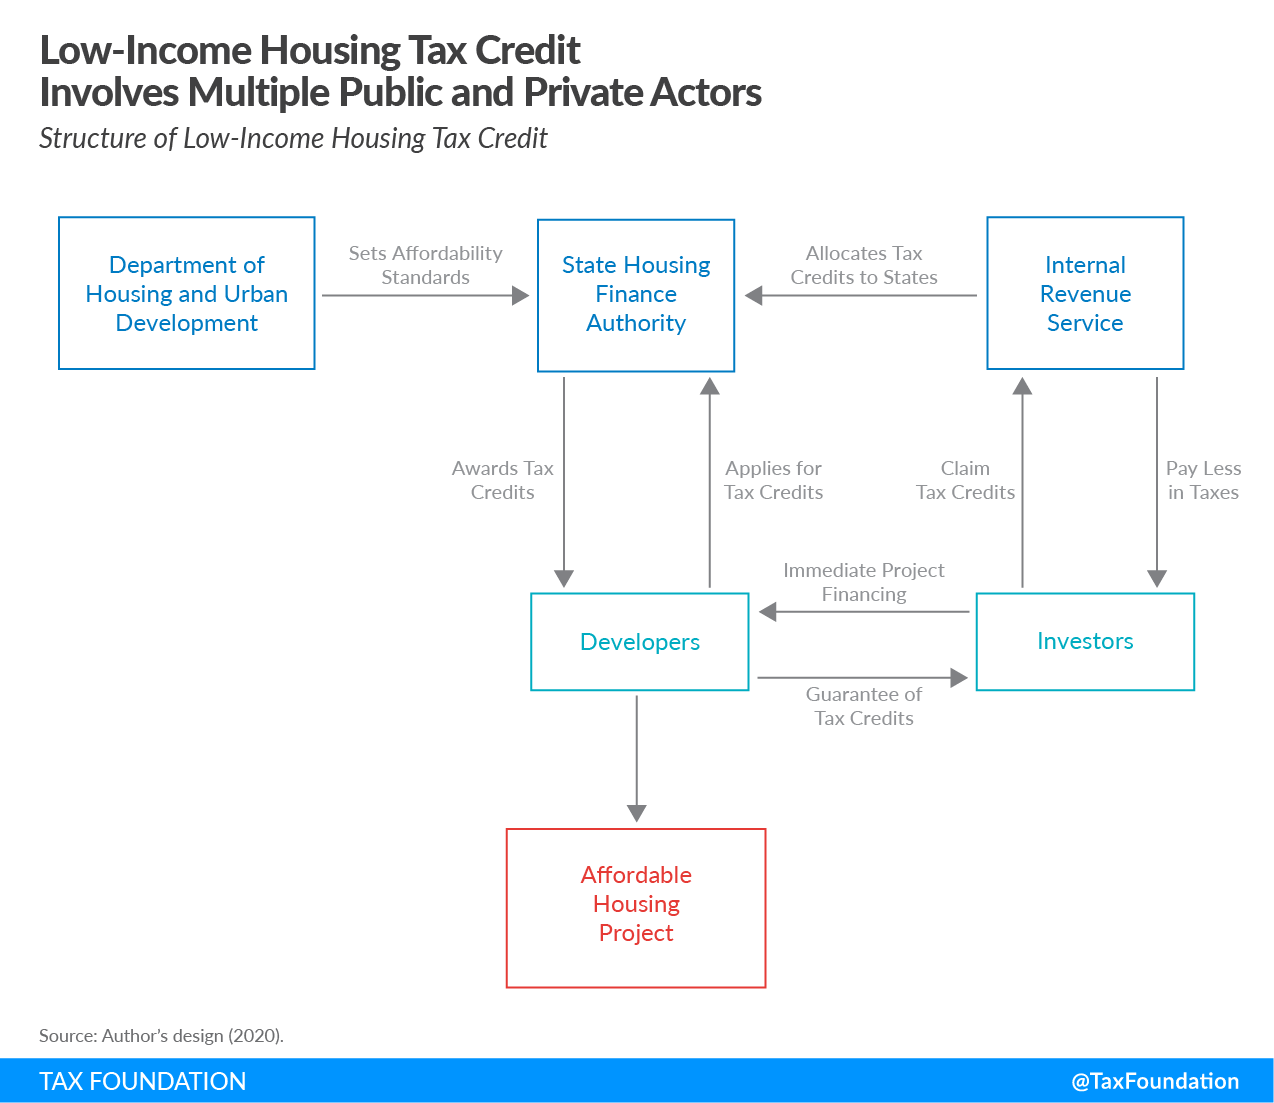 The Low-Income Housing Tax Credit (LIHTC)